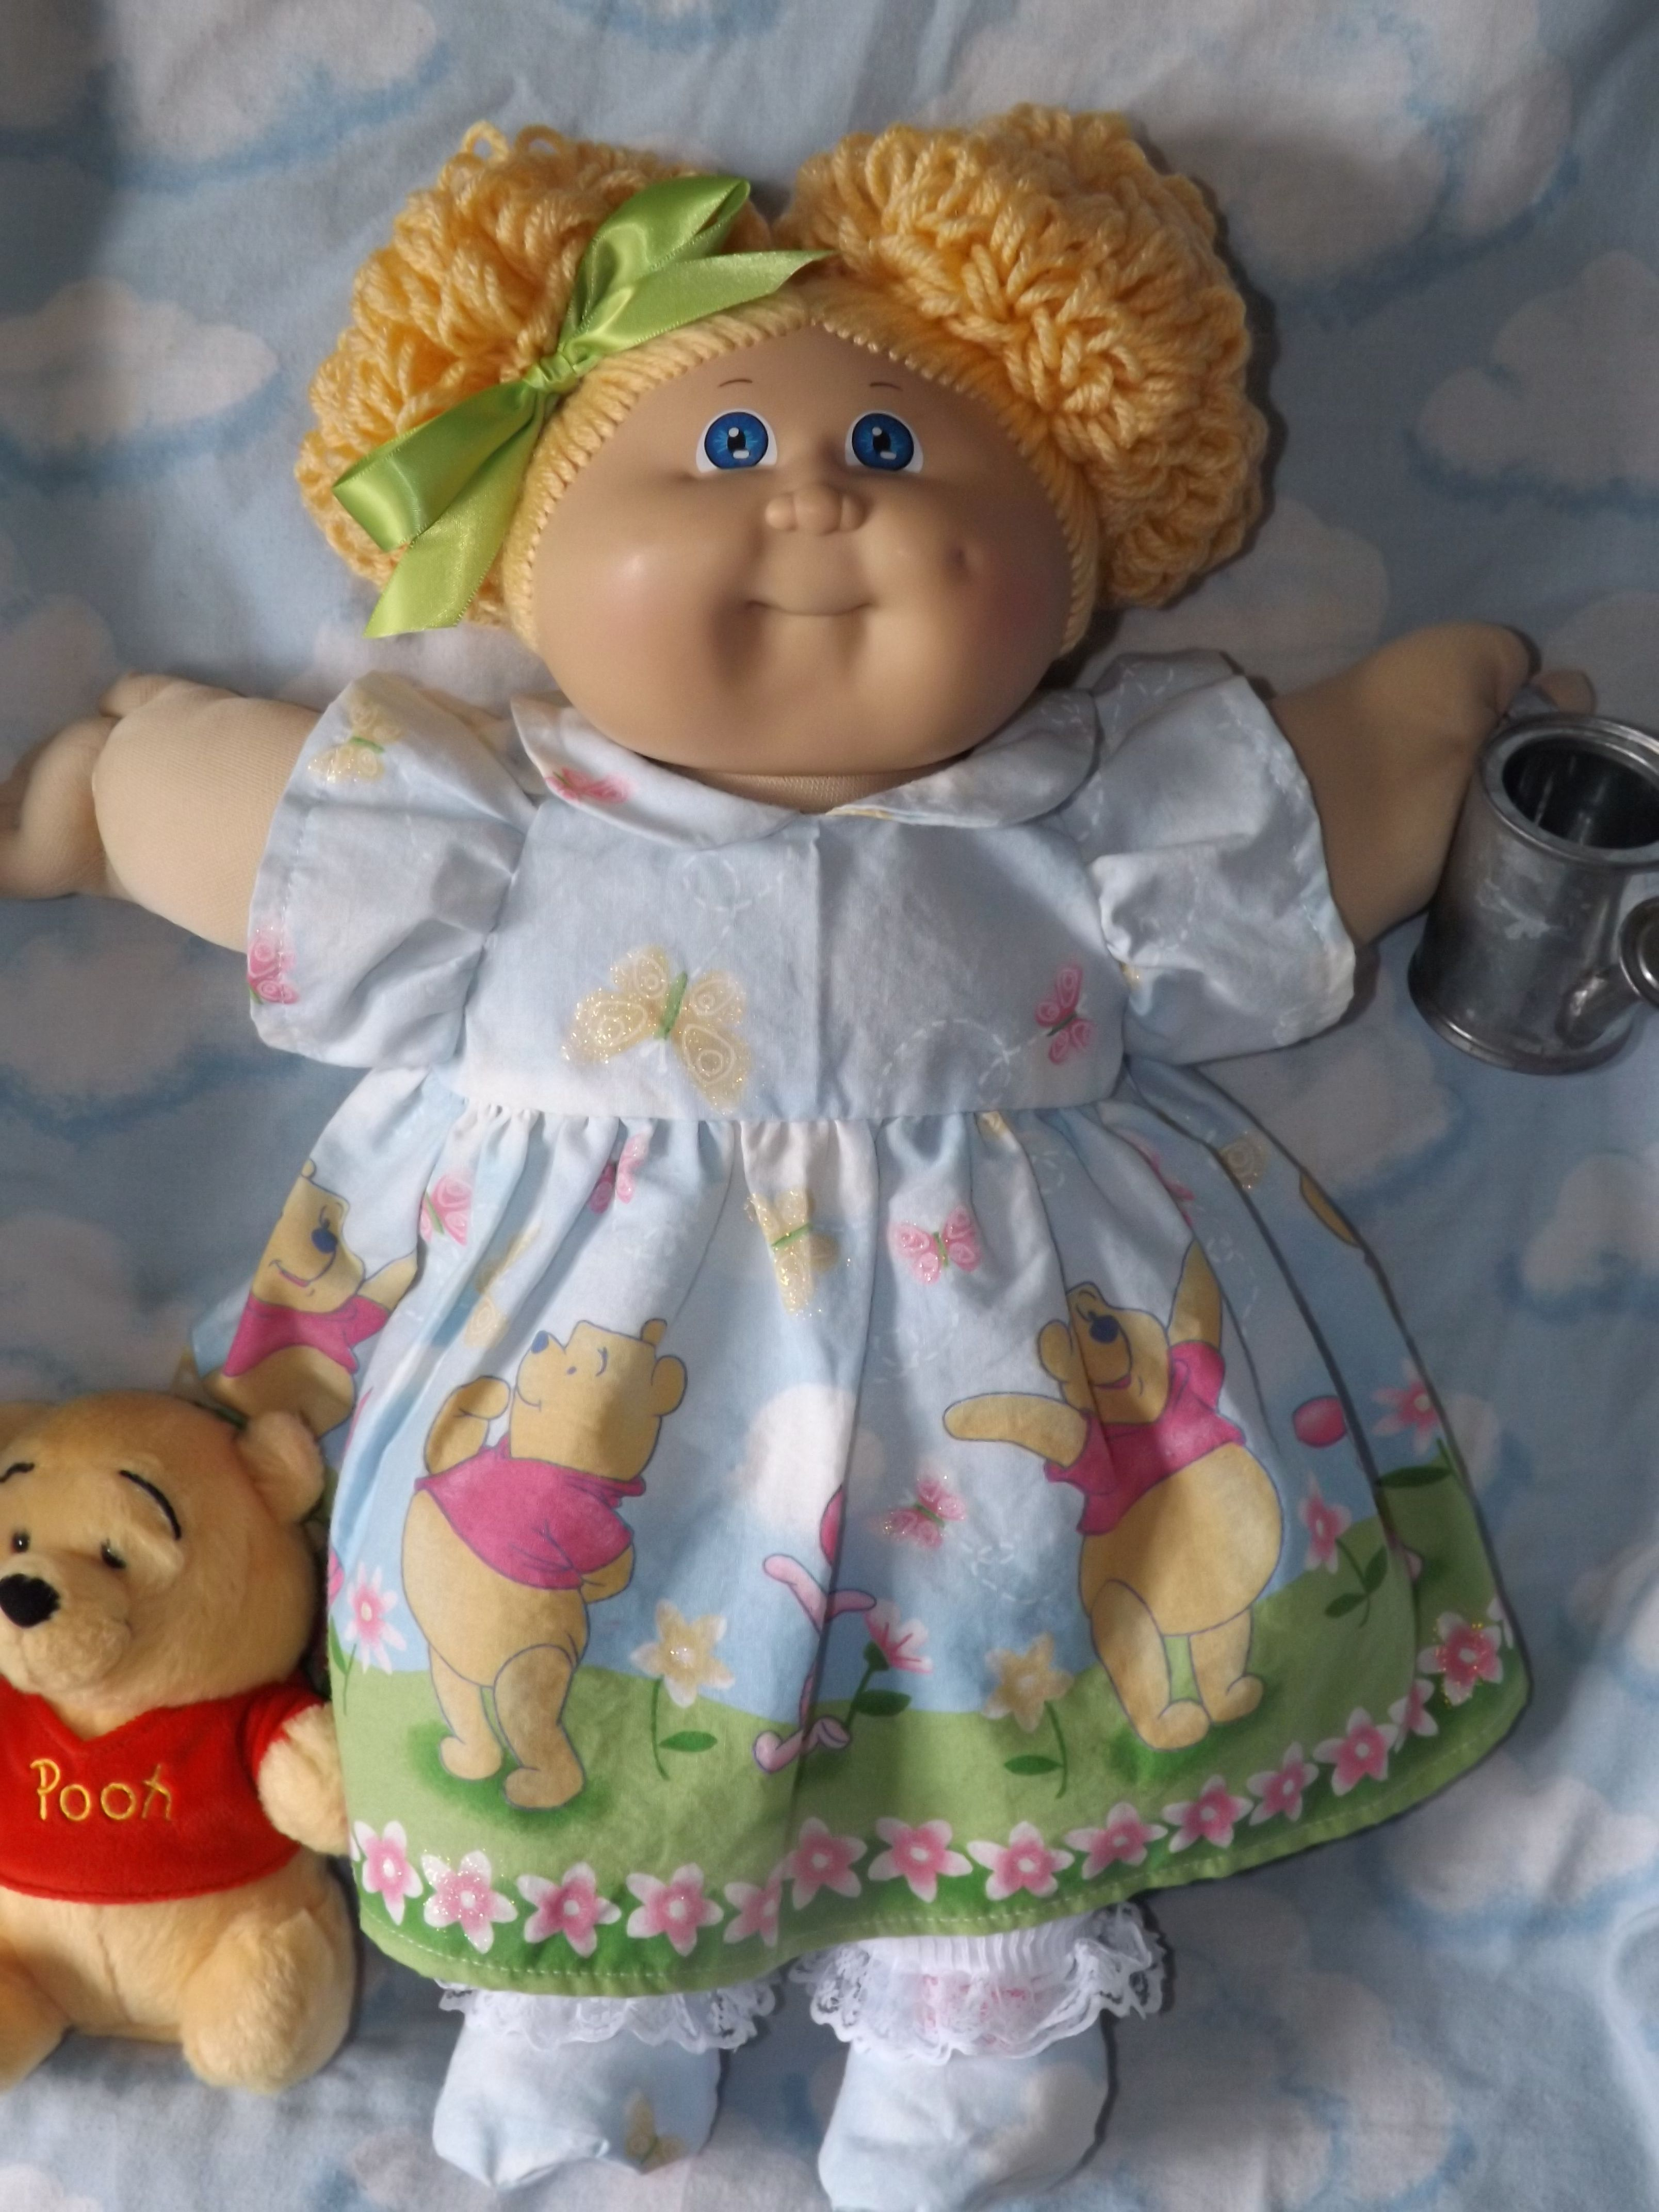 Cabbage Patch Kids Reroot 3 Double Popcorn Bun She Loves Spring And Winnie The Pooh Made B Cabbage Patch Babies Cabbage Patch Kids Dolls Cabbage Patch Dolls